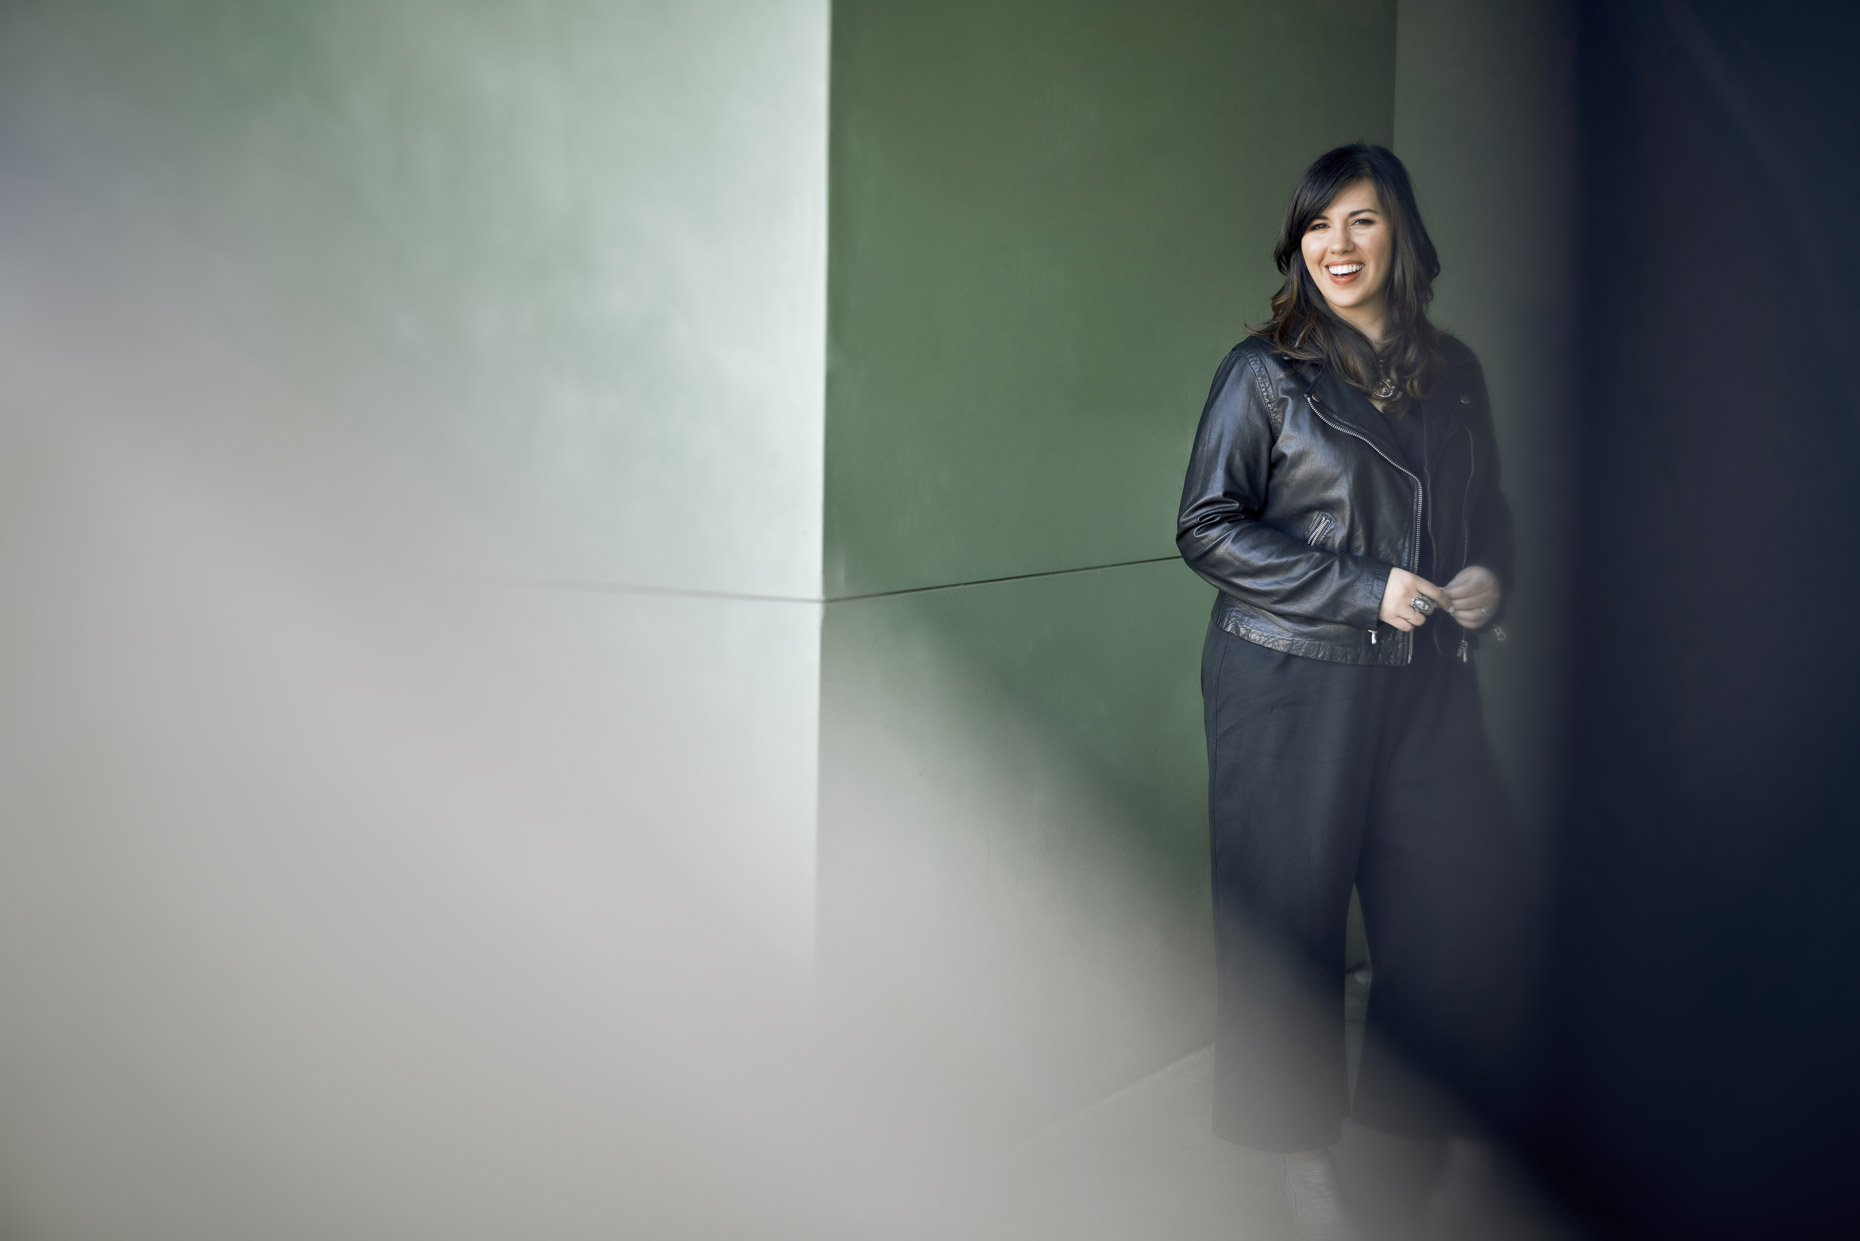 Portrait of smiling woman in black leather coat